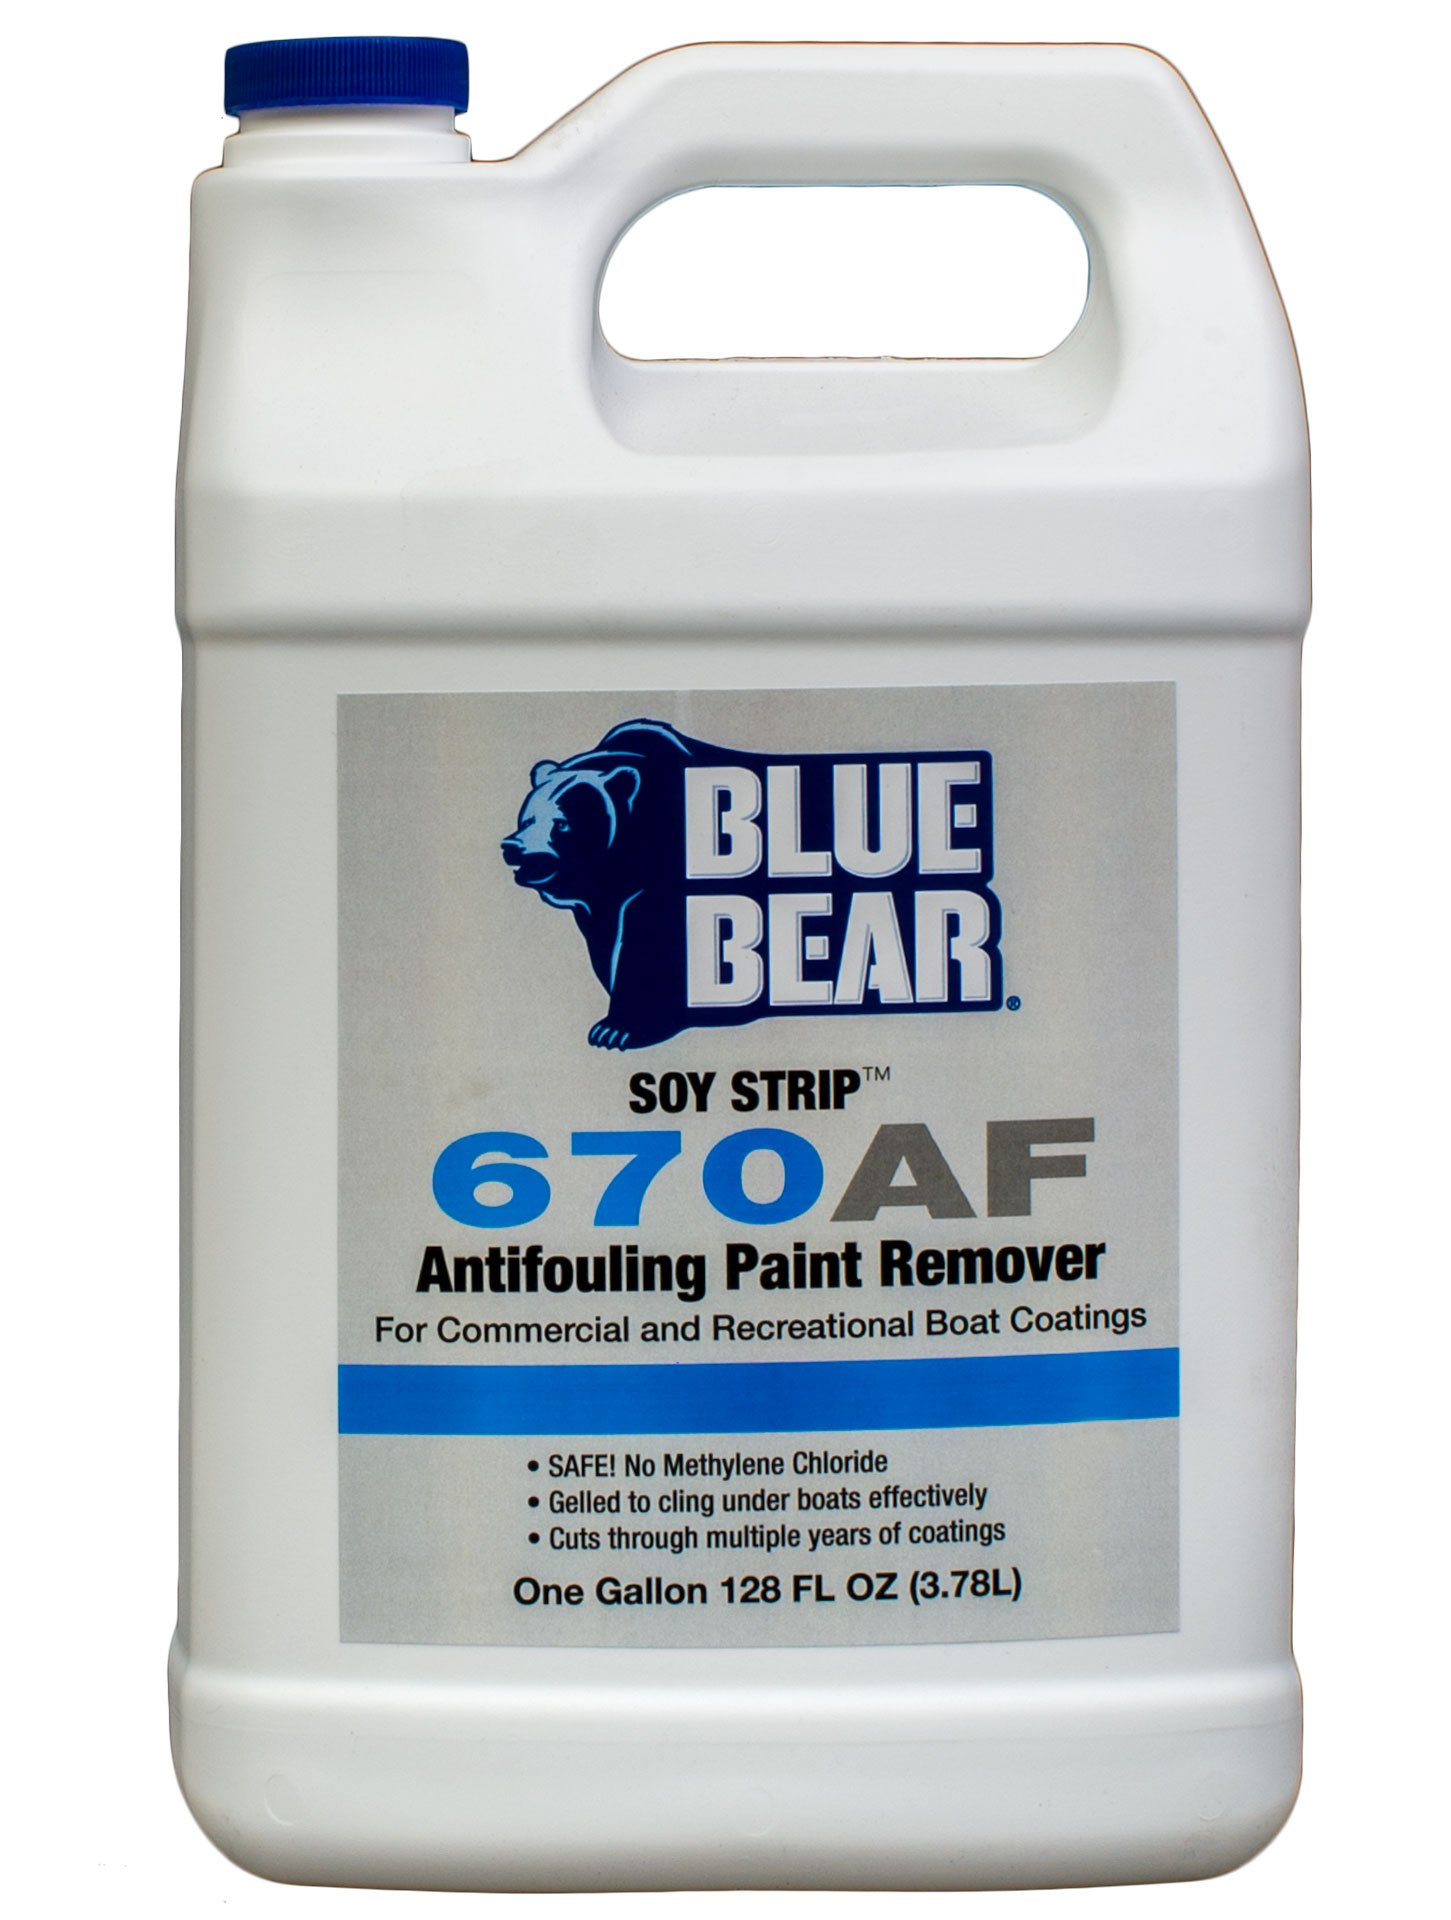 BLUE BEAR 670AF Anti-Fouling Paint Remover Gallon